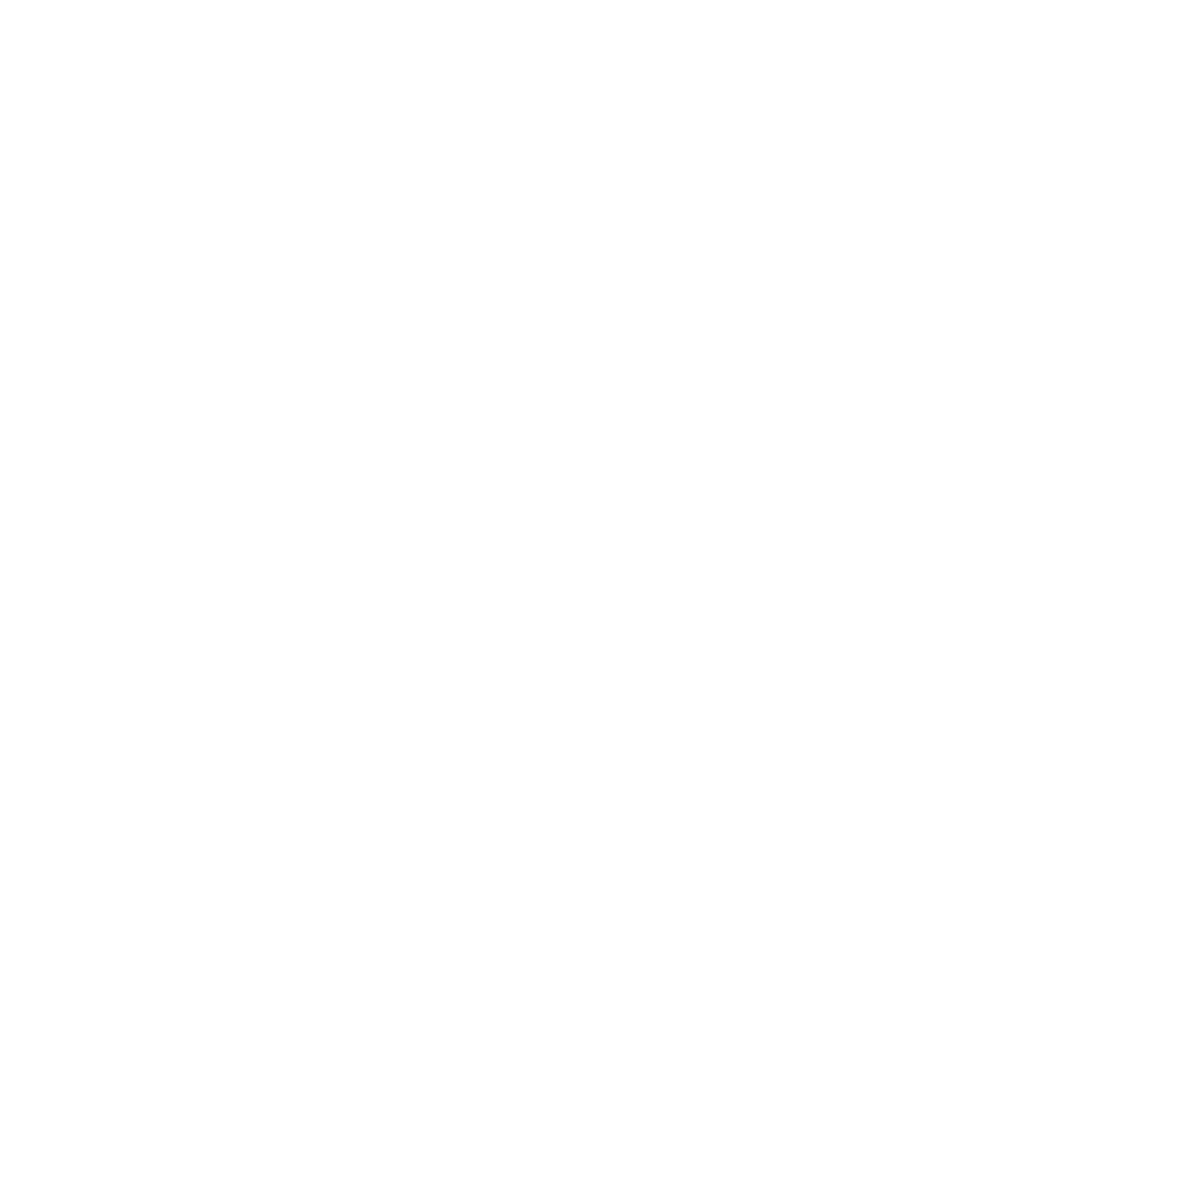 Psychoactive frog tessellation representing the marketing phase of their services